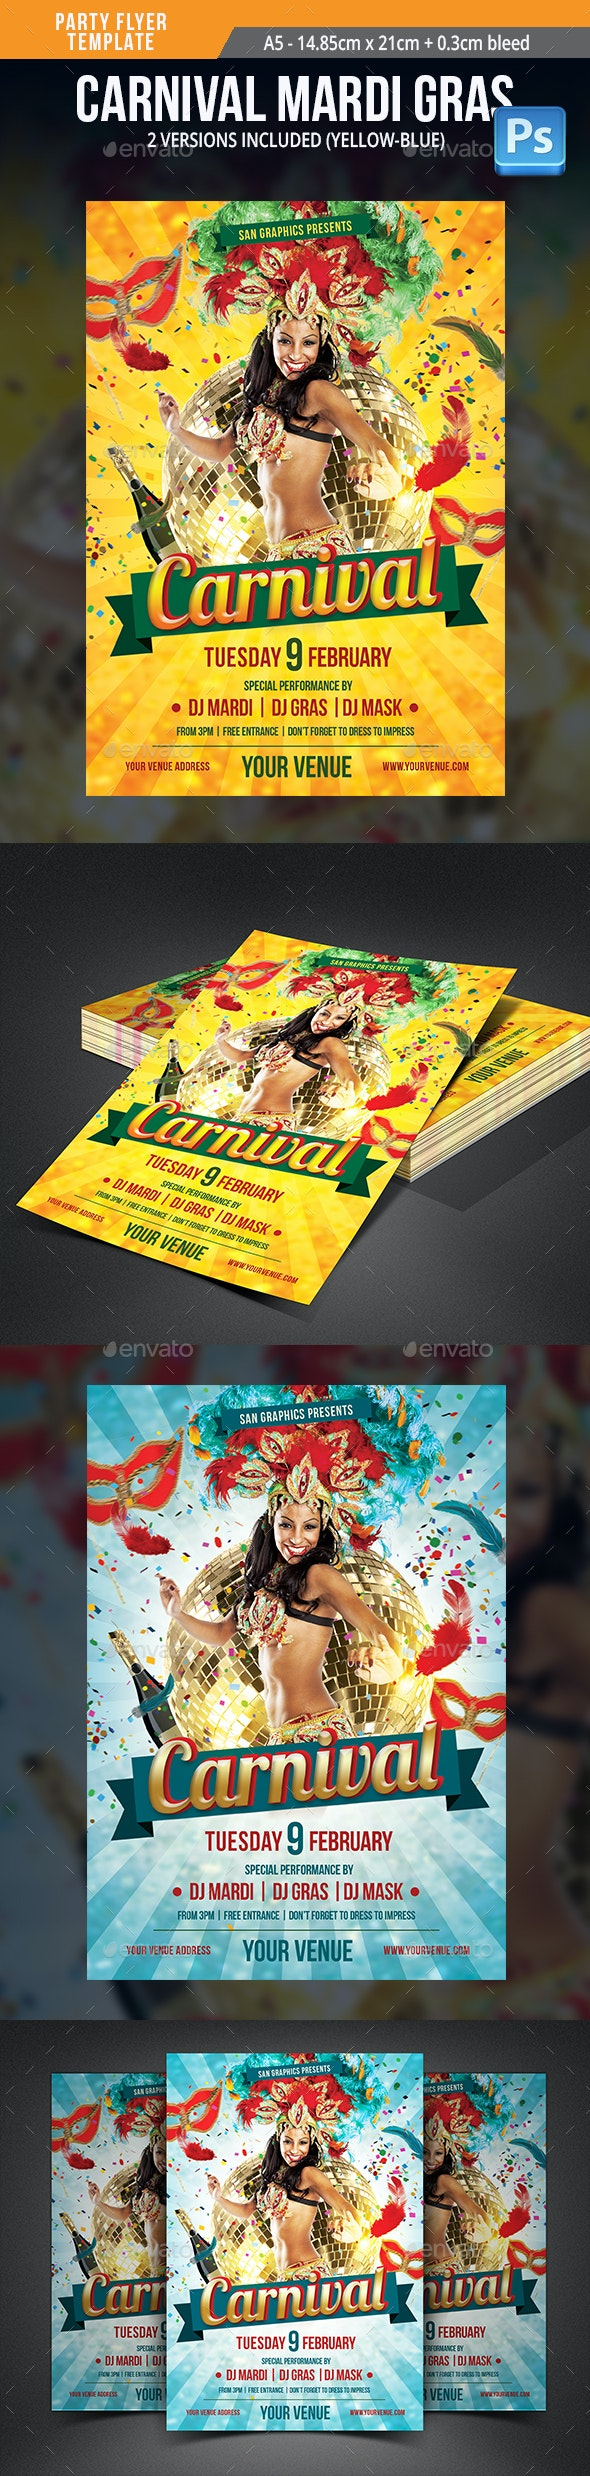 Carnival Mardi Gras Party Flyer Template - Clubs & Parties Events